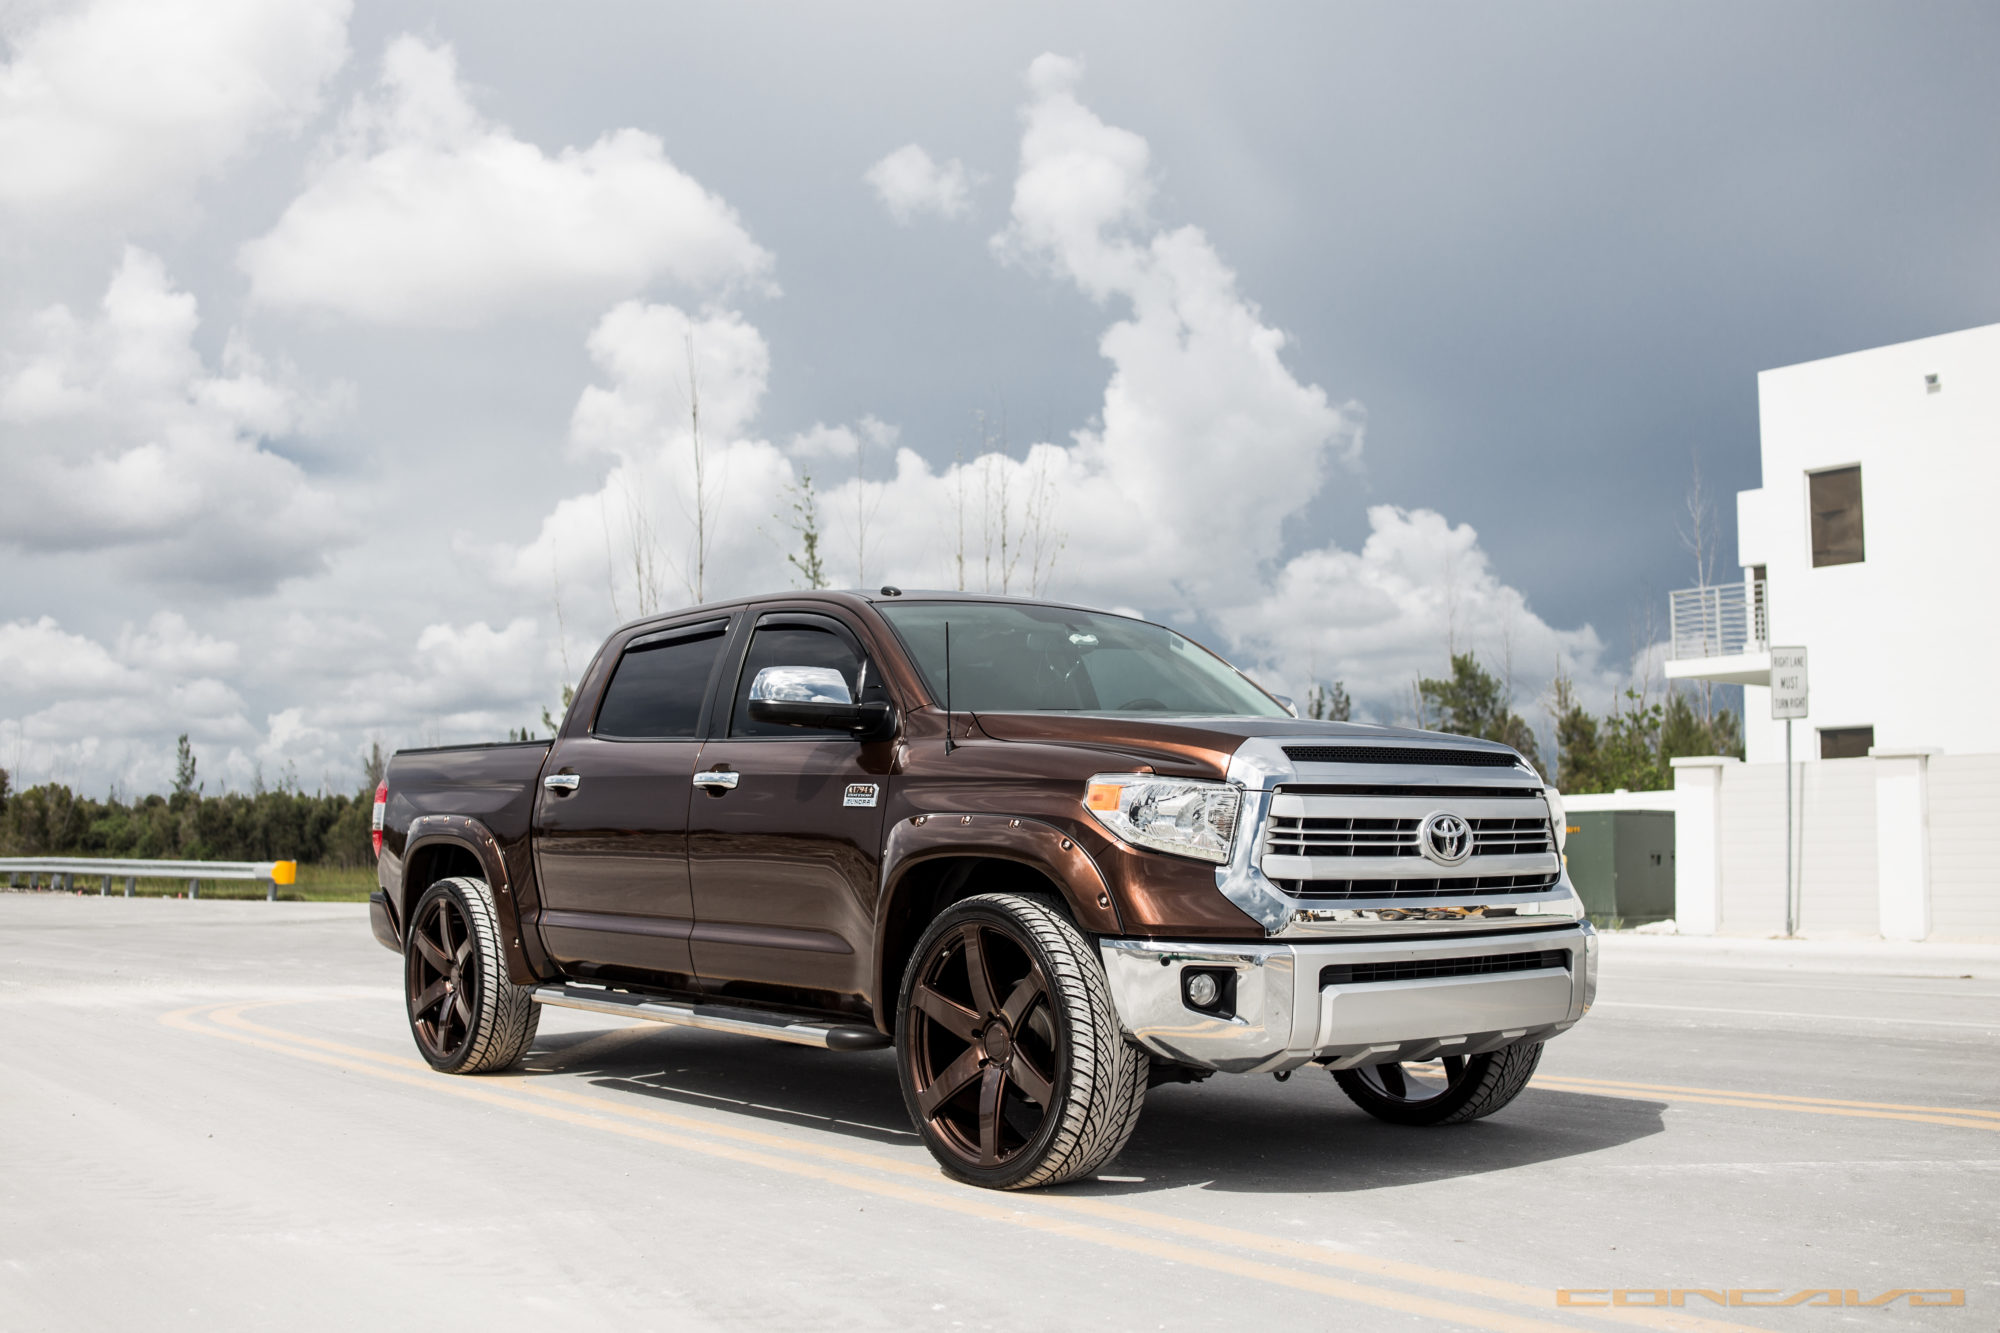 Toyota Tundra On Color Matching 26 Cw 6 Concavo Wheels